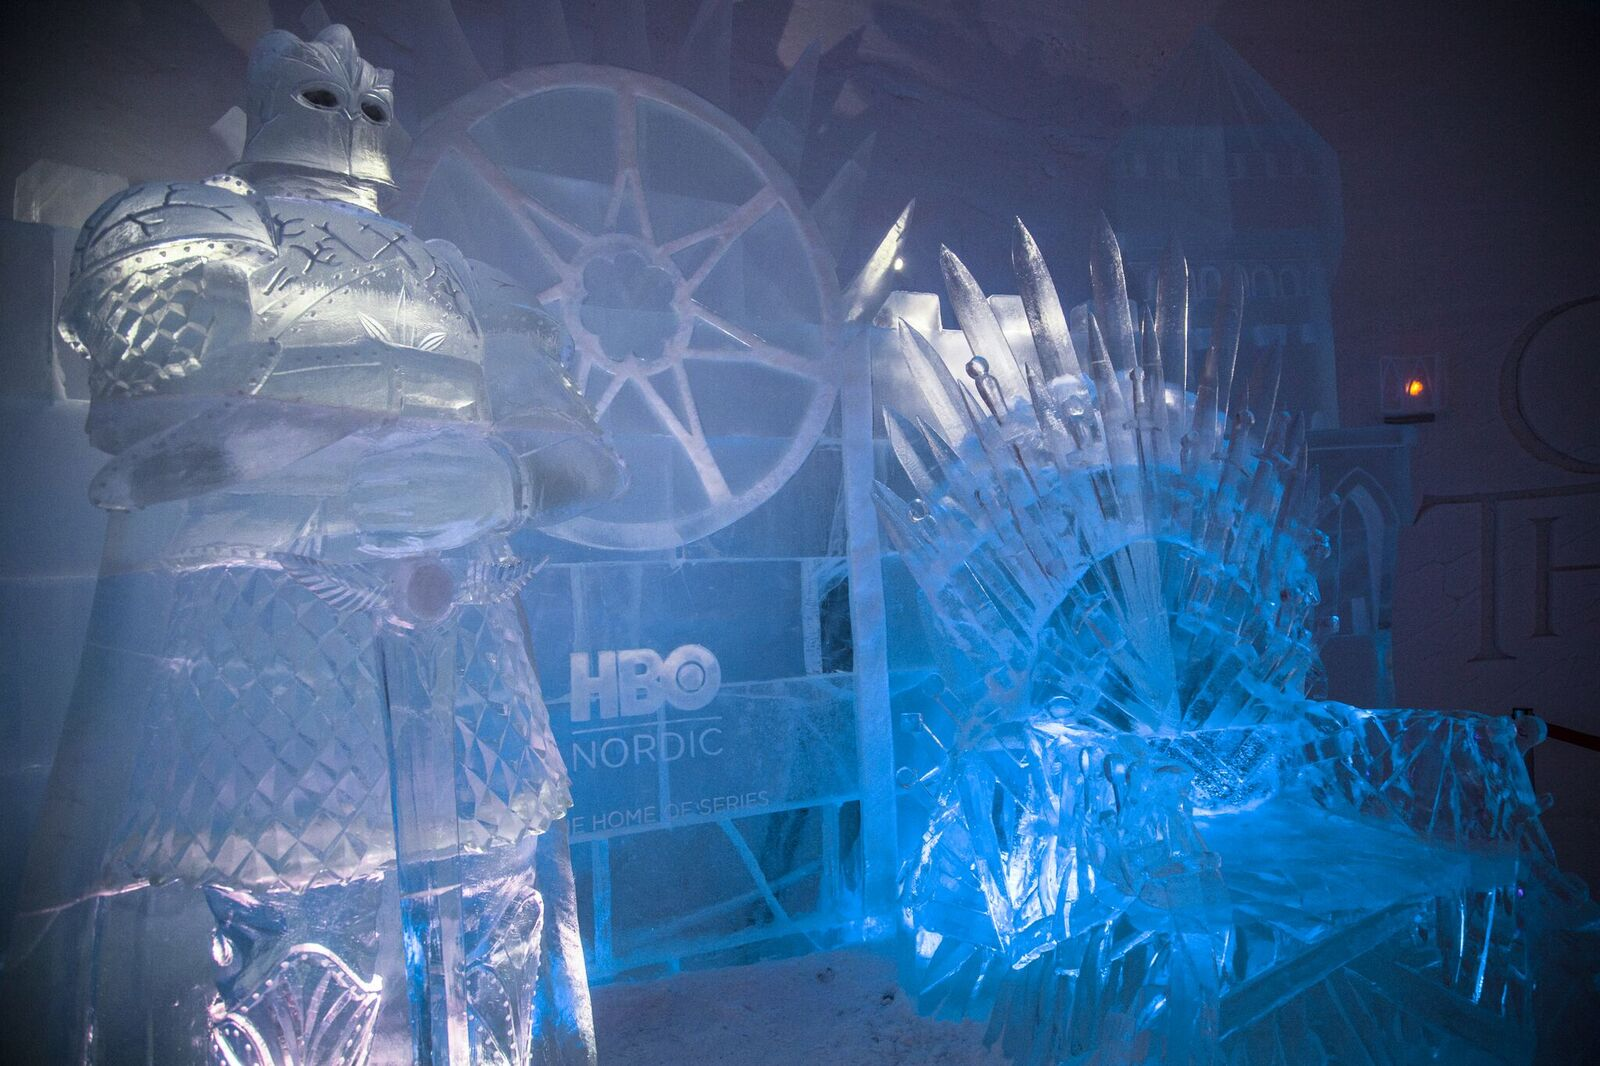 iron throne in game of thrones hotel in finland